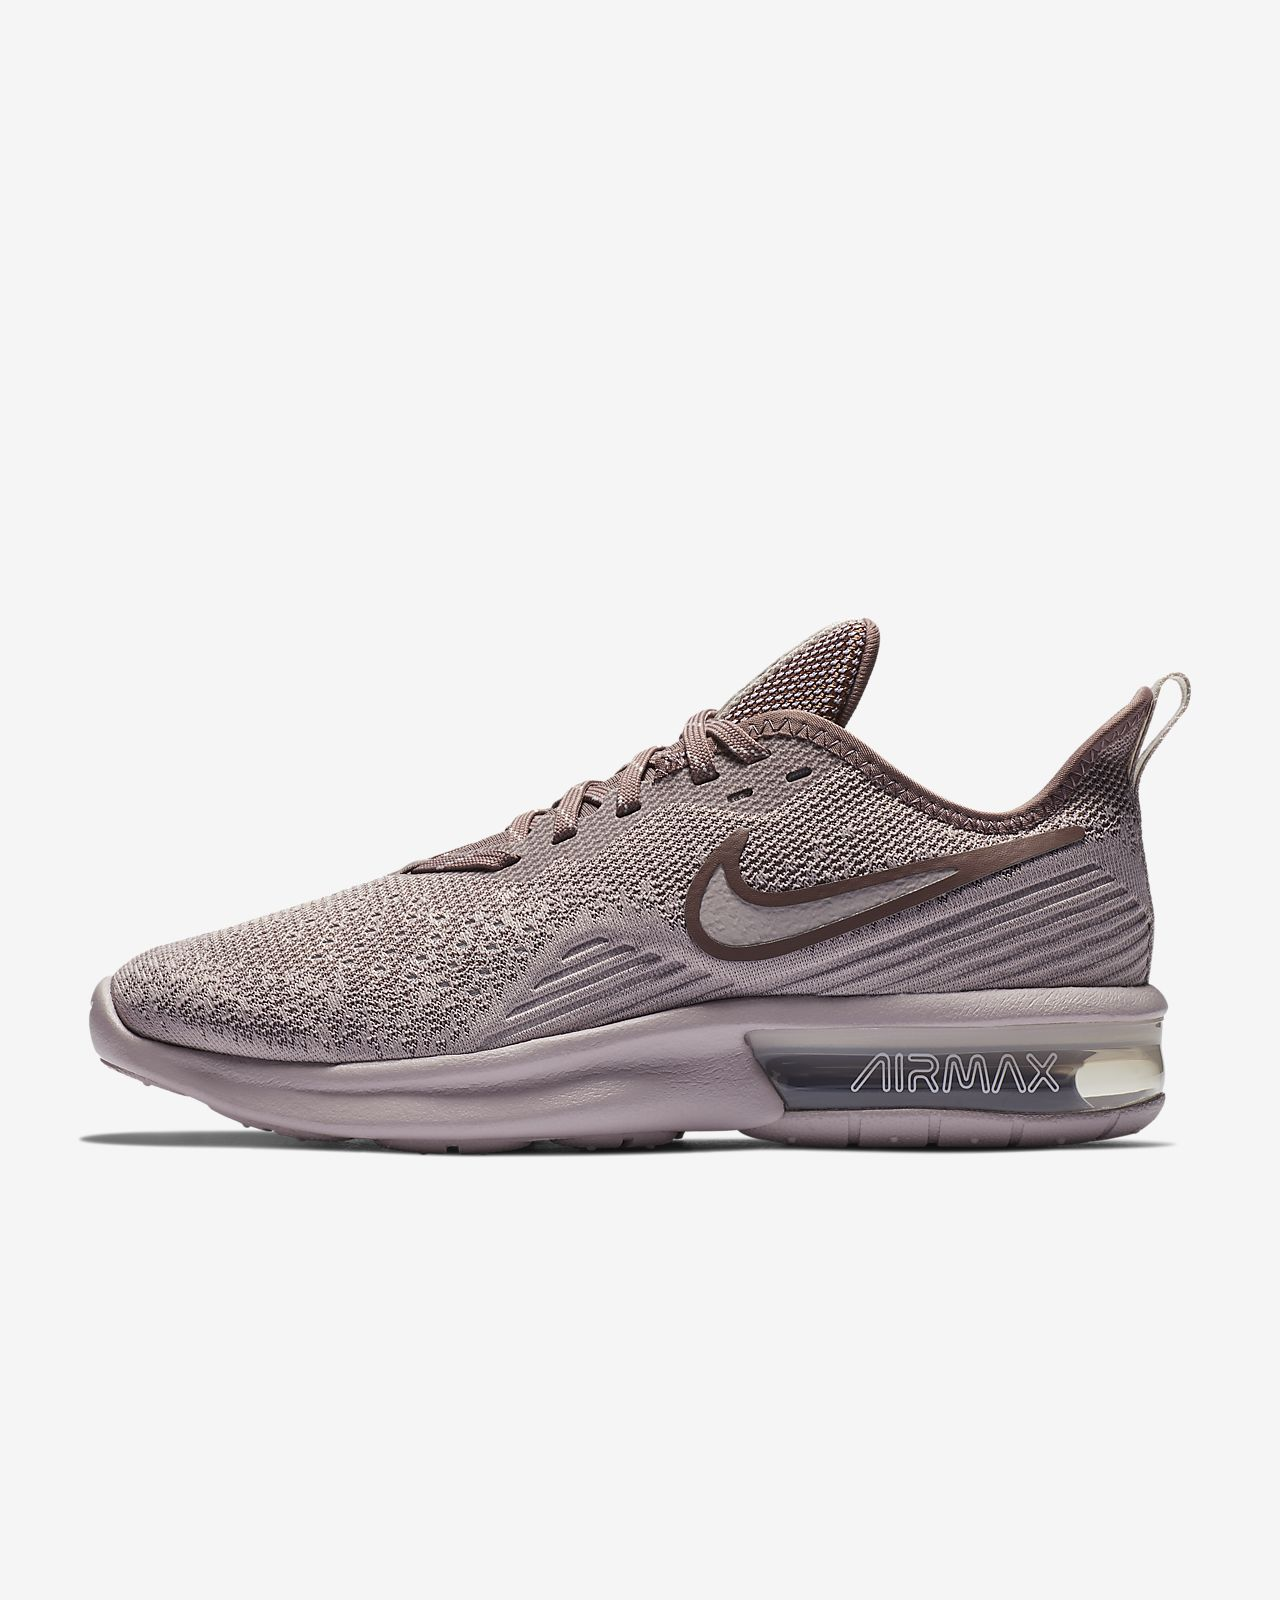 reputable site 3f6a1 3bc58 Women s Shoe. Nike Air Max Sequent 4